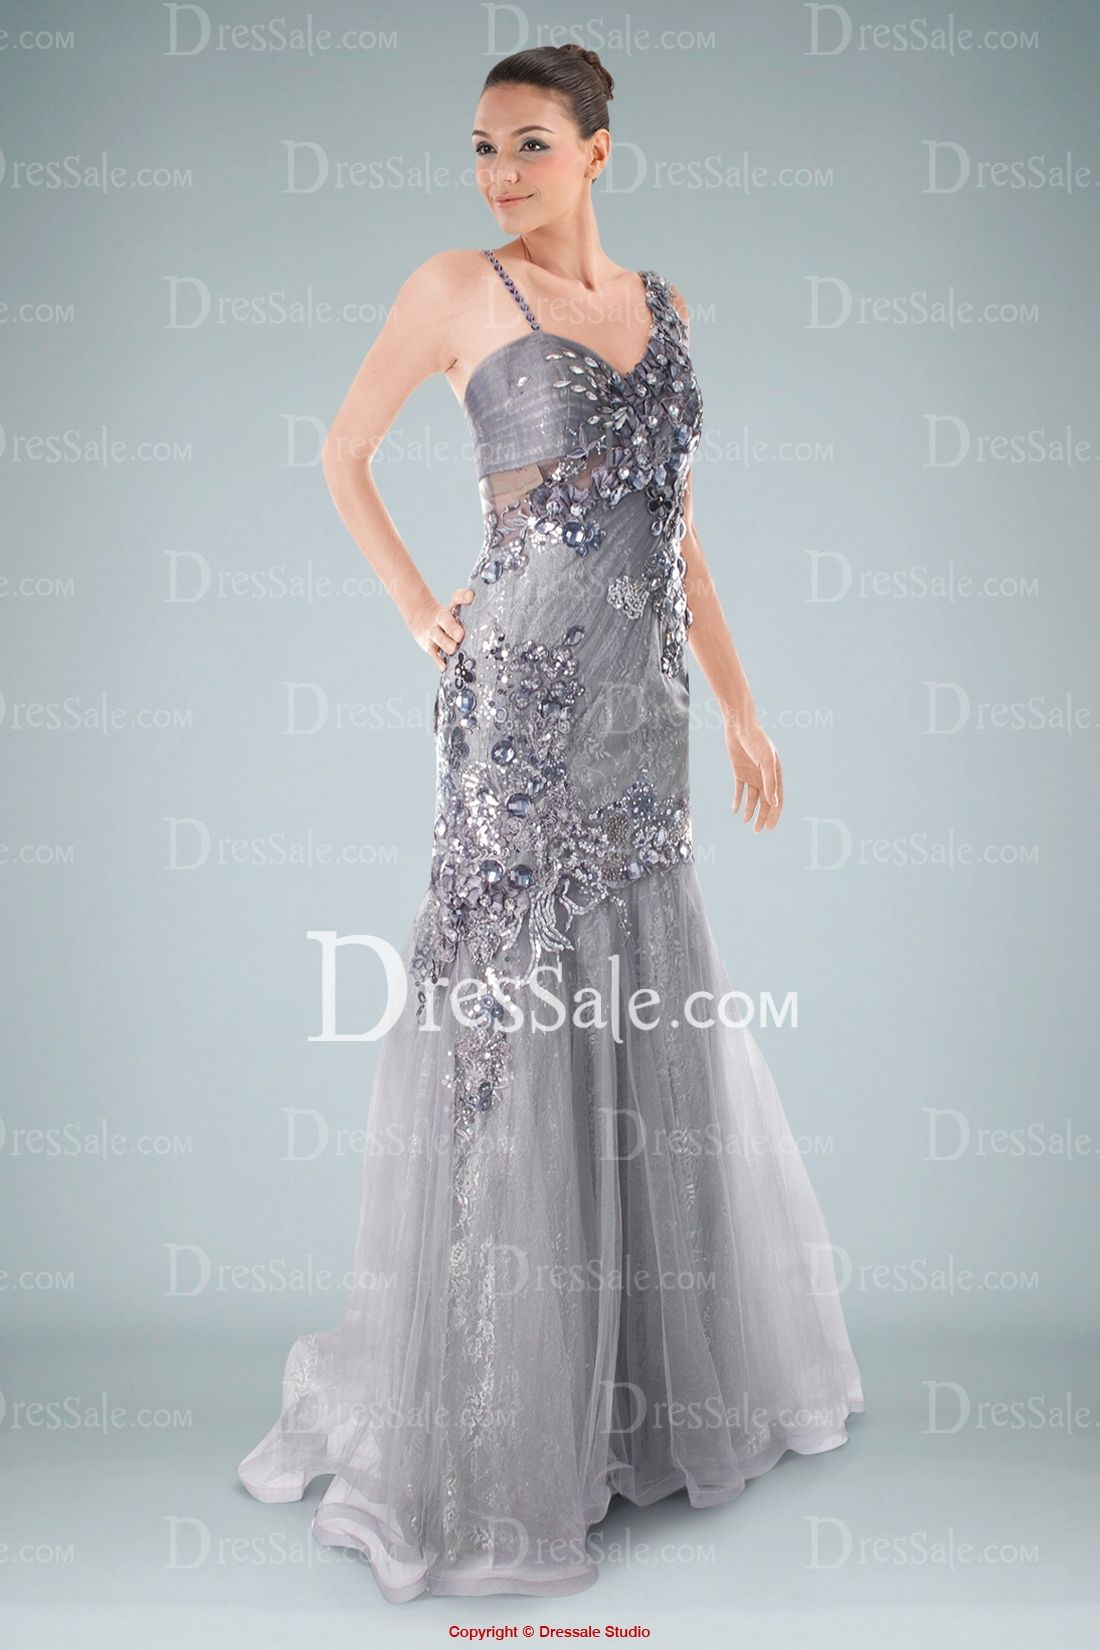 Chic Lace Sheath Evening Gown Enhanced with Organza Overlay and ...